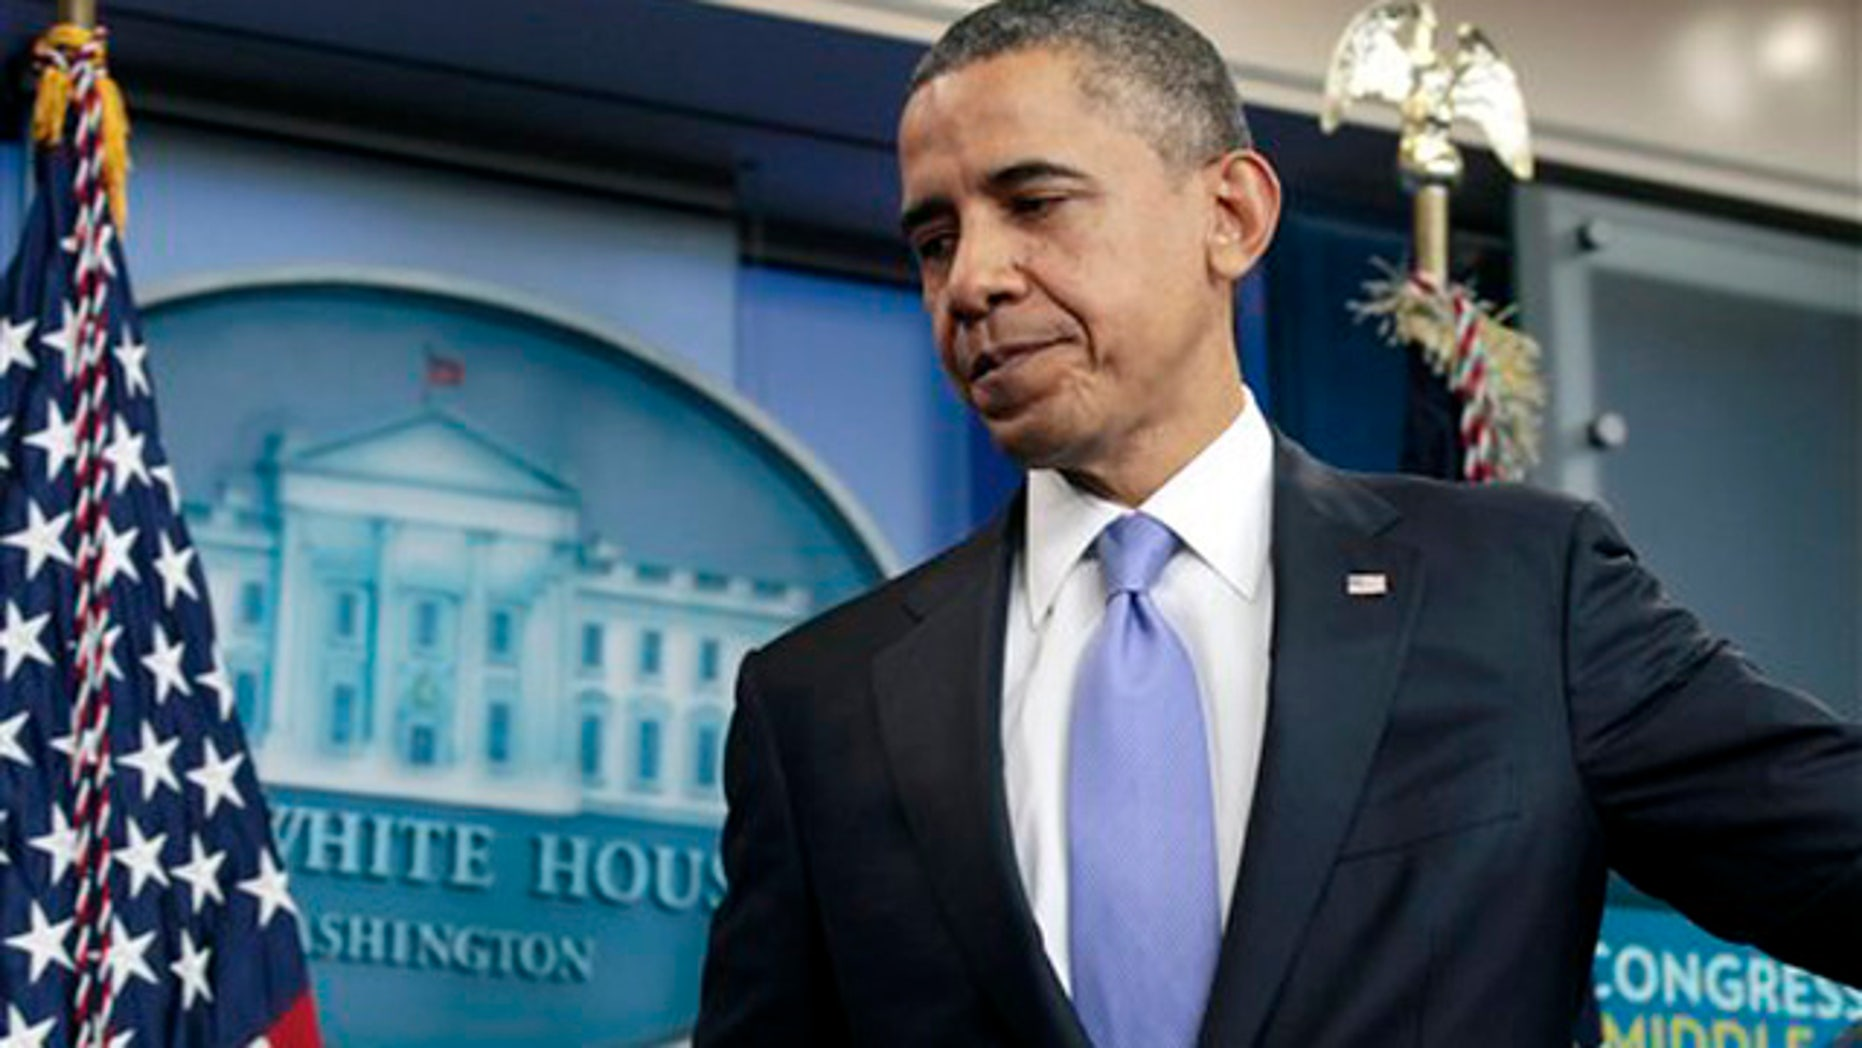 Dec. 8, 2011: President Obama leaves a news conference in the White House briefing room in Washington.